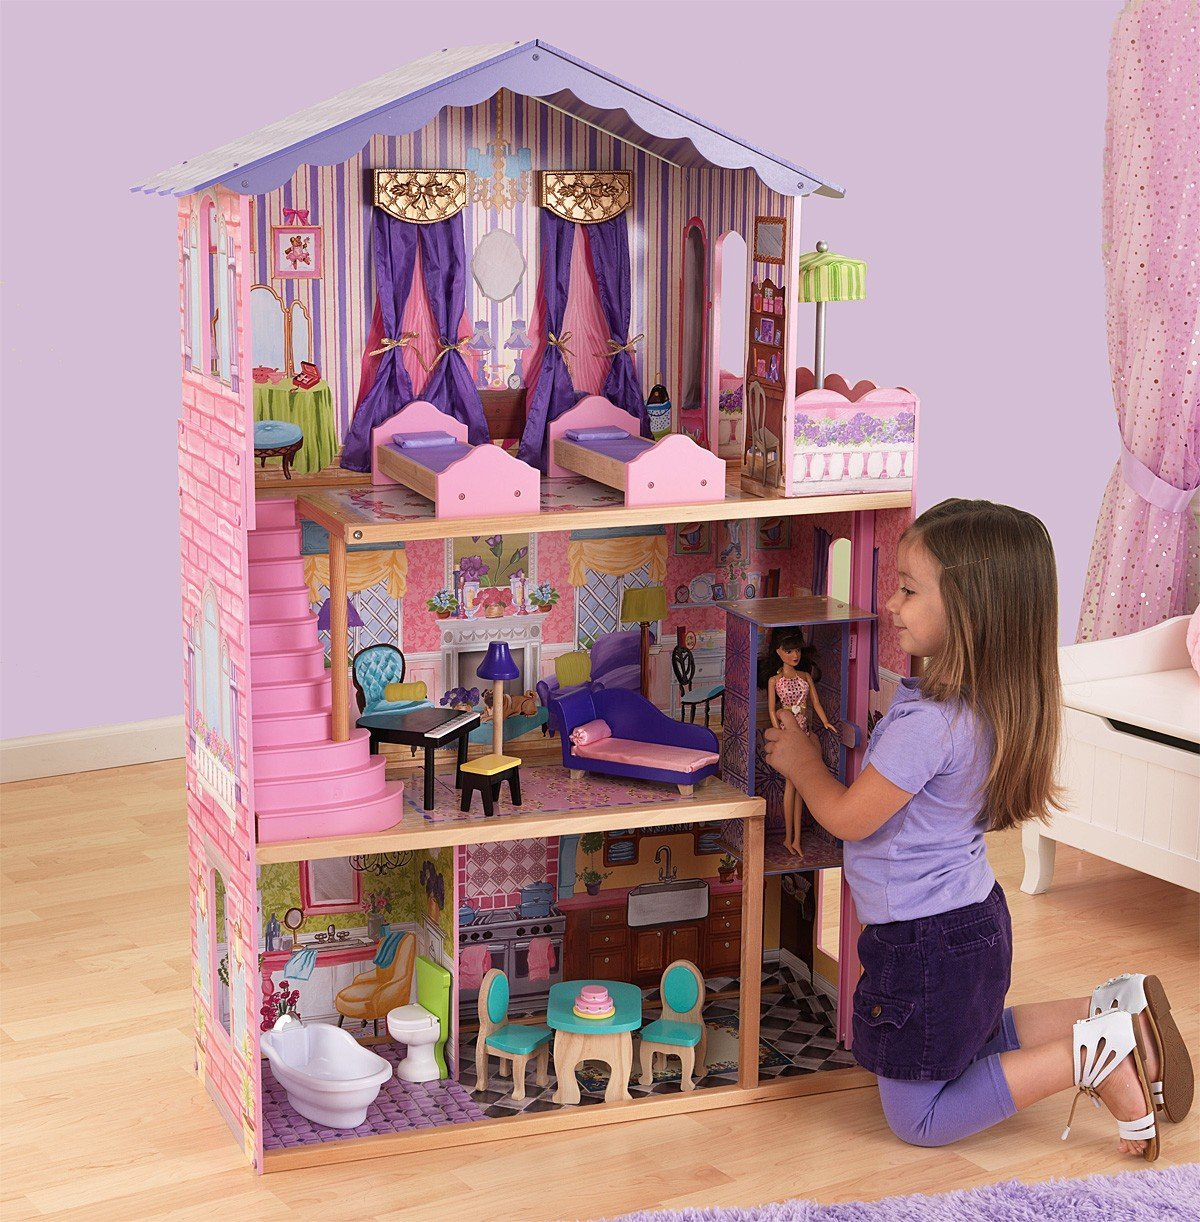 barbie wood furniture. Amazon.com: KidKraft My Dream Mansion Wooden Dollhouse With New Gliding Elevator And 13 P...: Toys \u0026 Games Barbie Wood Furniture